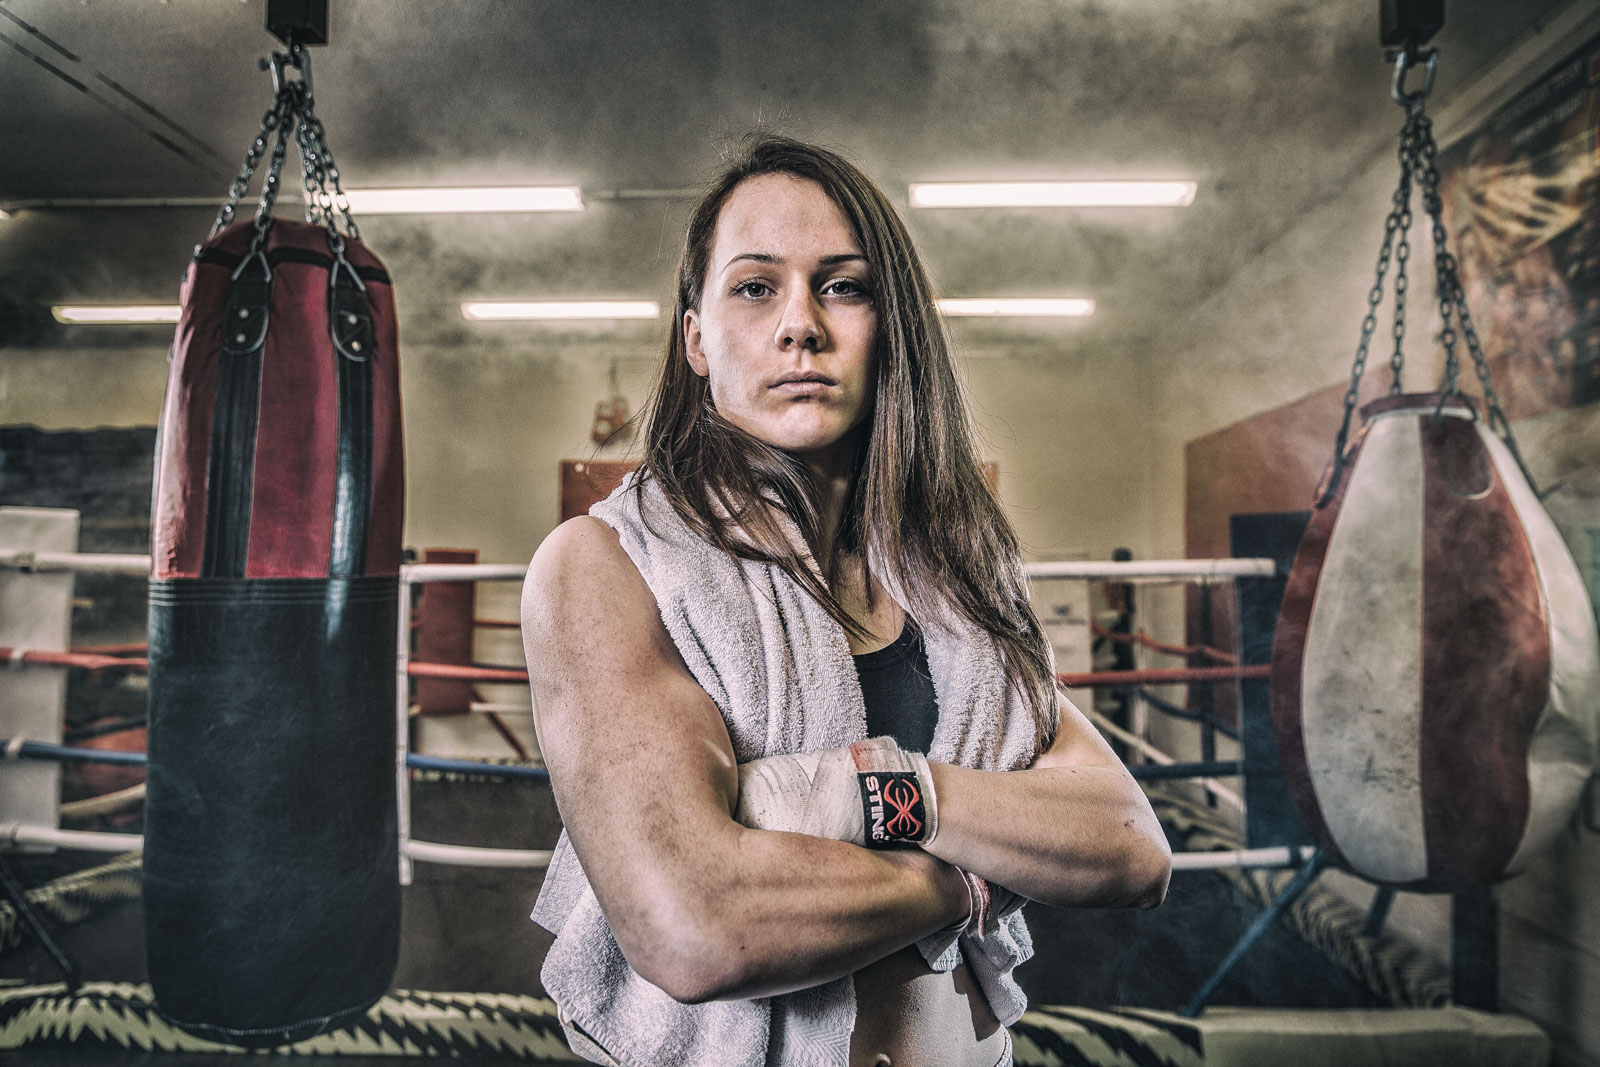 female-boxer-portrait